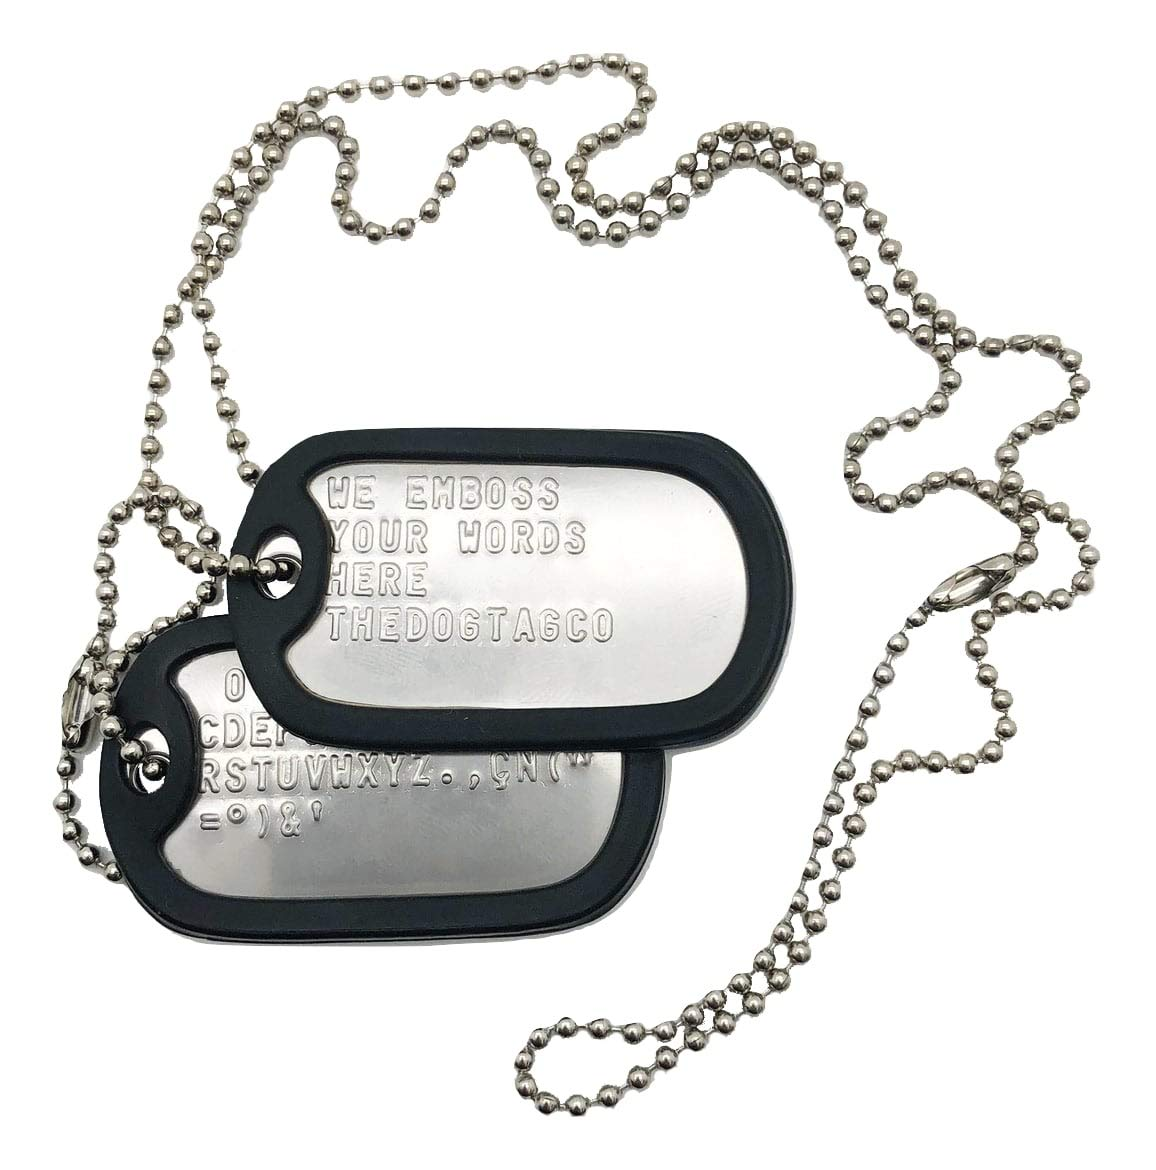 TheDogTagCo Military Dog Tags – Set of 2 Personalised Stainless Steel Nickel Plated Army Style Dog ID Tags with Ball Chains & silencers Read Description to See How to ADD Personalisation